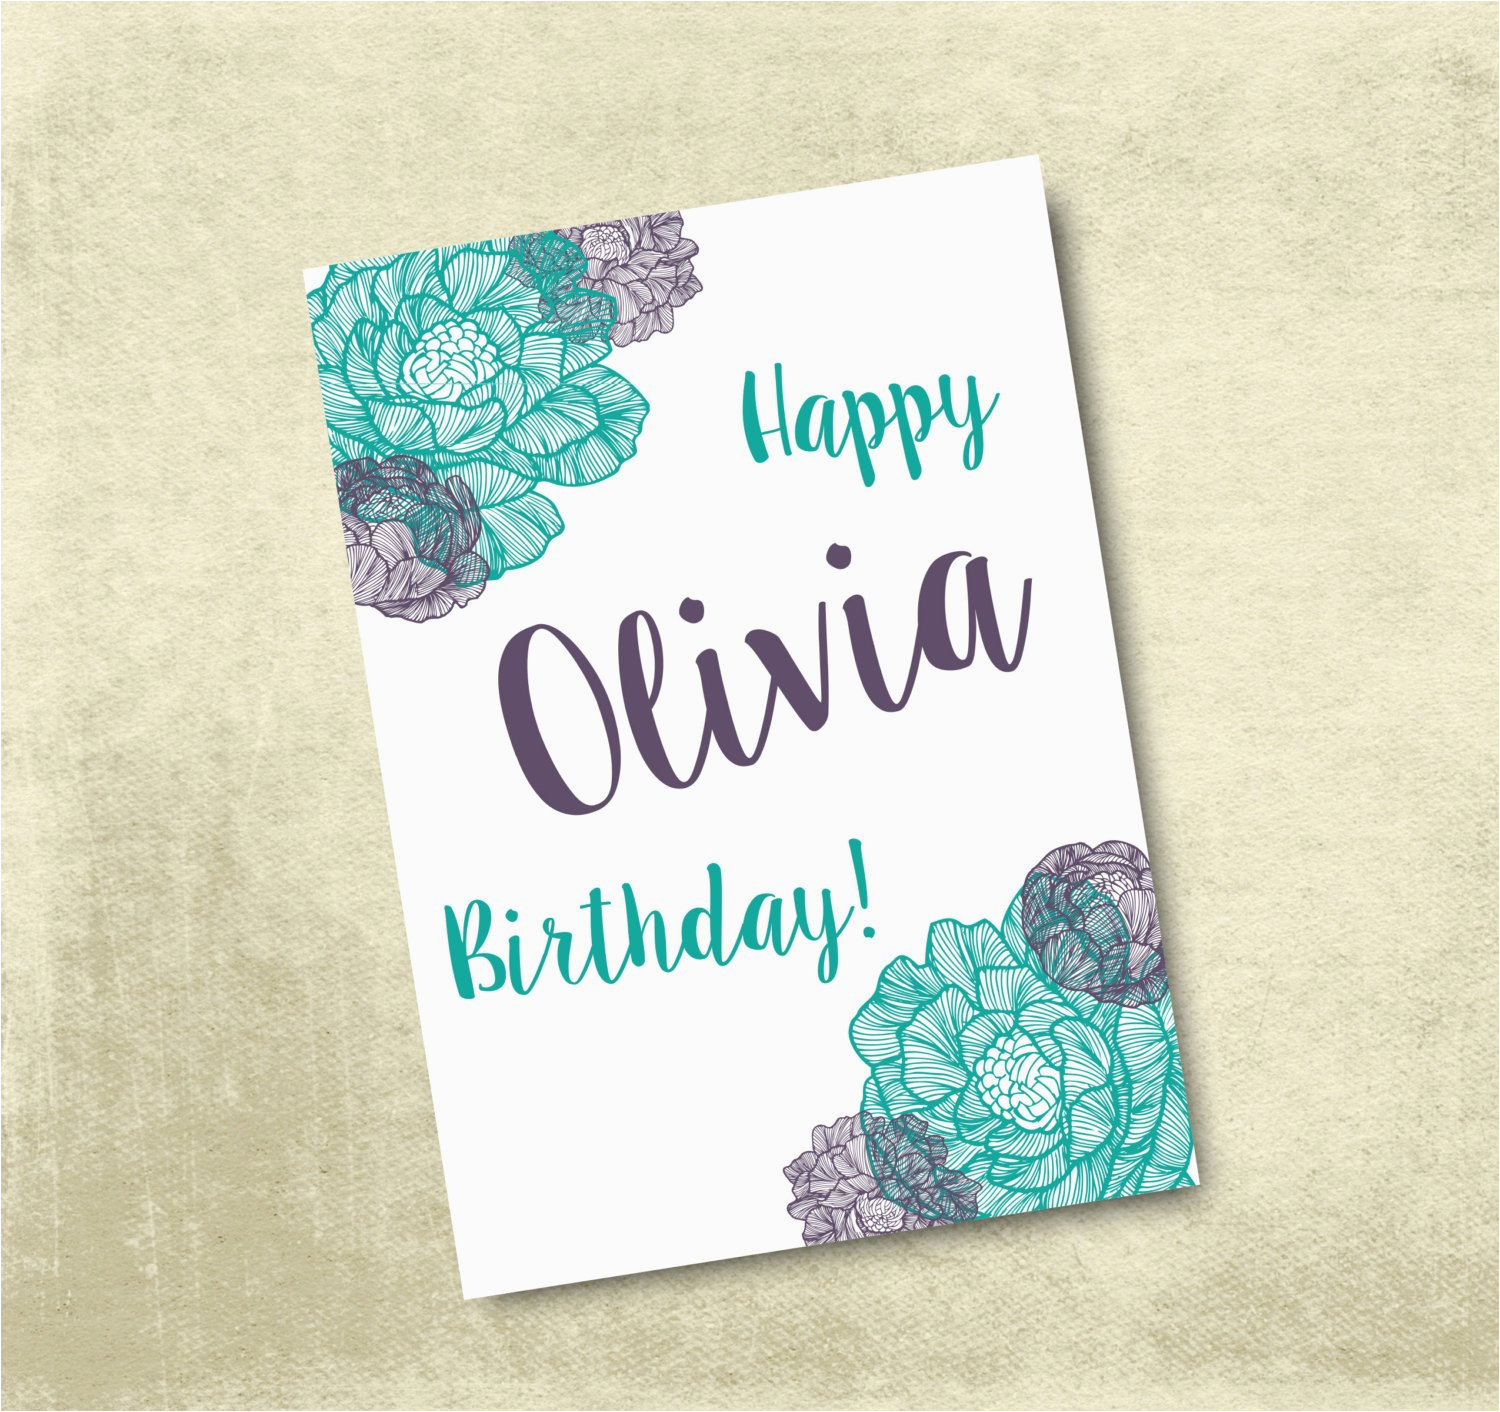 Customized Birthday Cards Free Printable Personalized Card